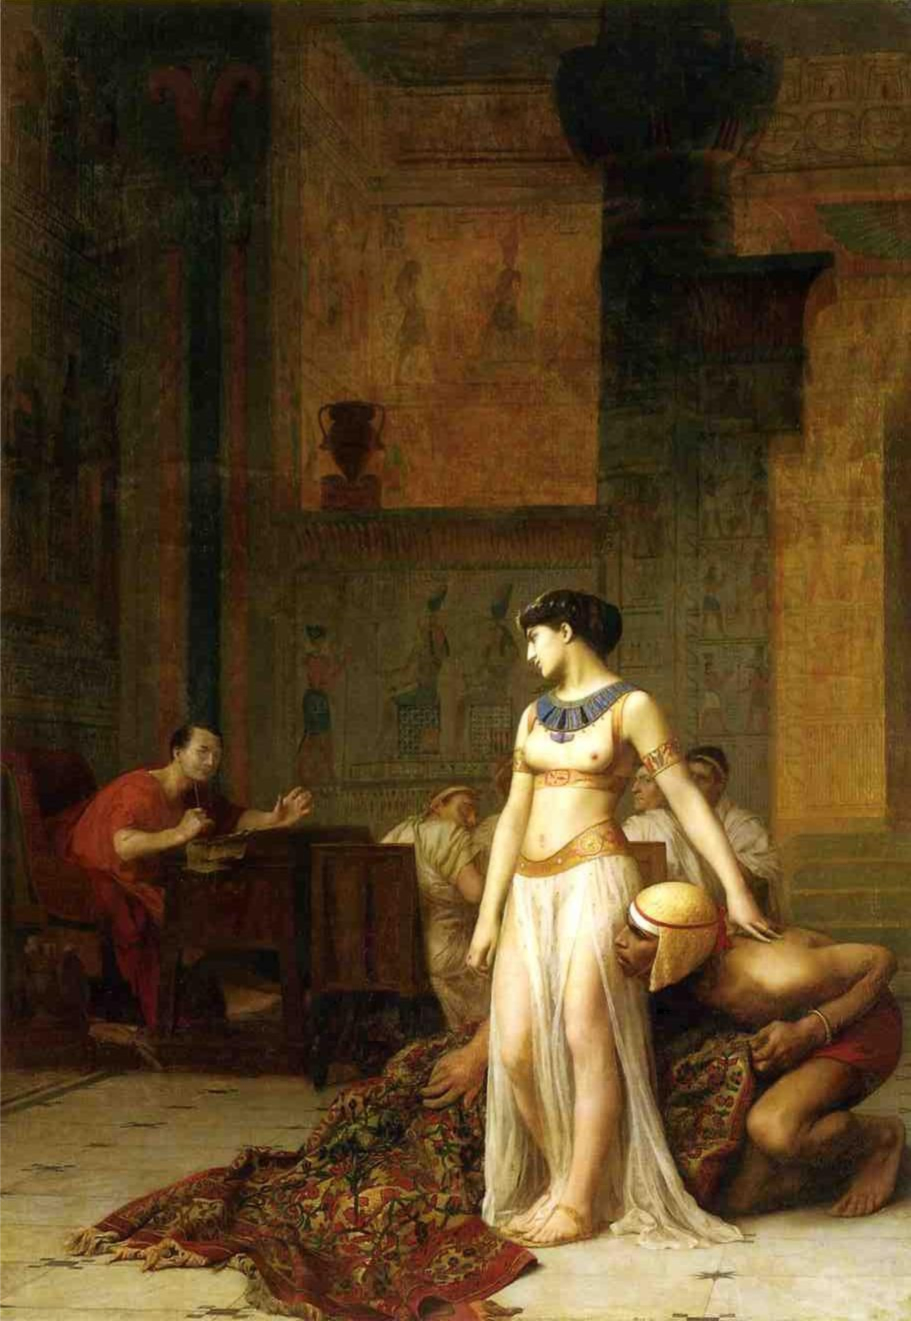 Cleopatra and Caesar by Jean-Leon-Gerome : Wiki Commons